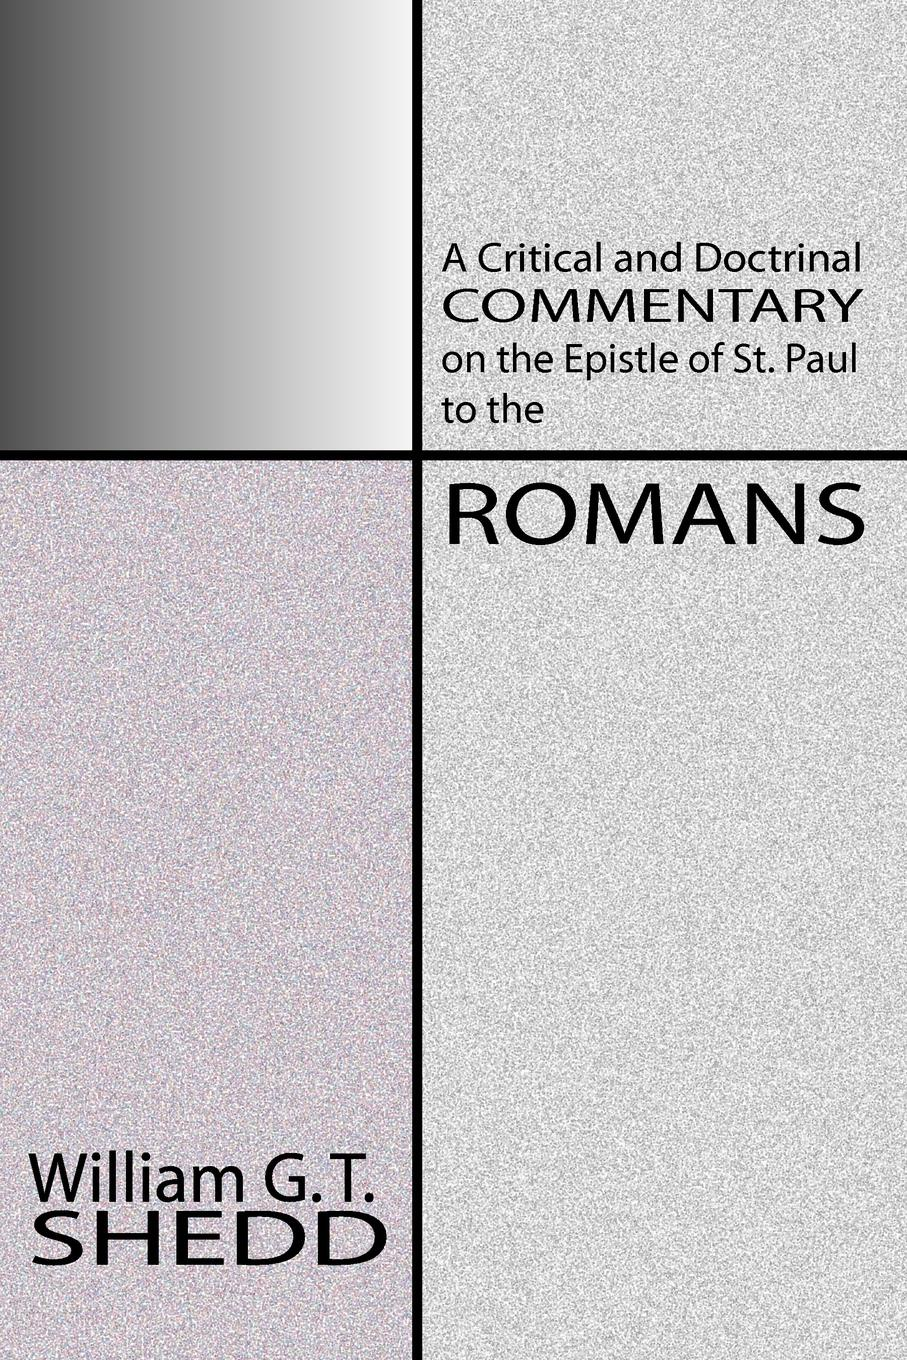 William Greenough Thaye Shedd Commentary on Romans. A Critical and Doctrinal Commentary on the Epstle of St. Paul to the Romans st paul mother mater christi meditations on our lady